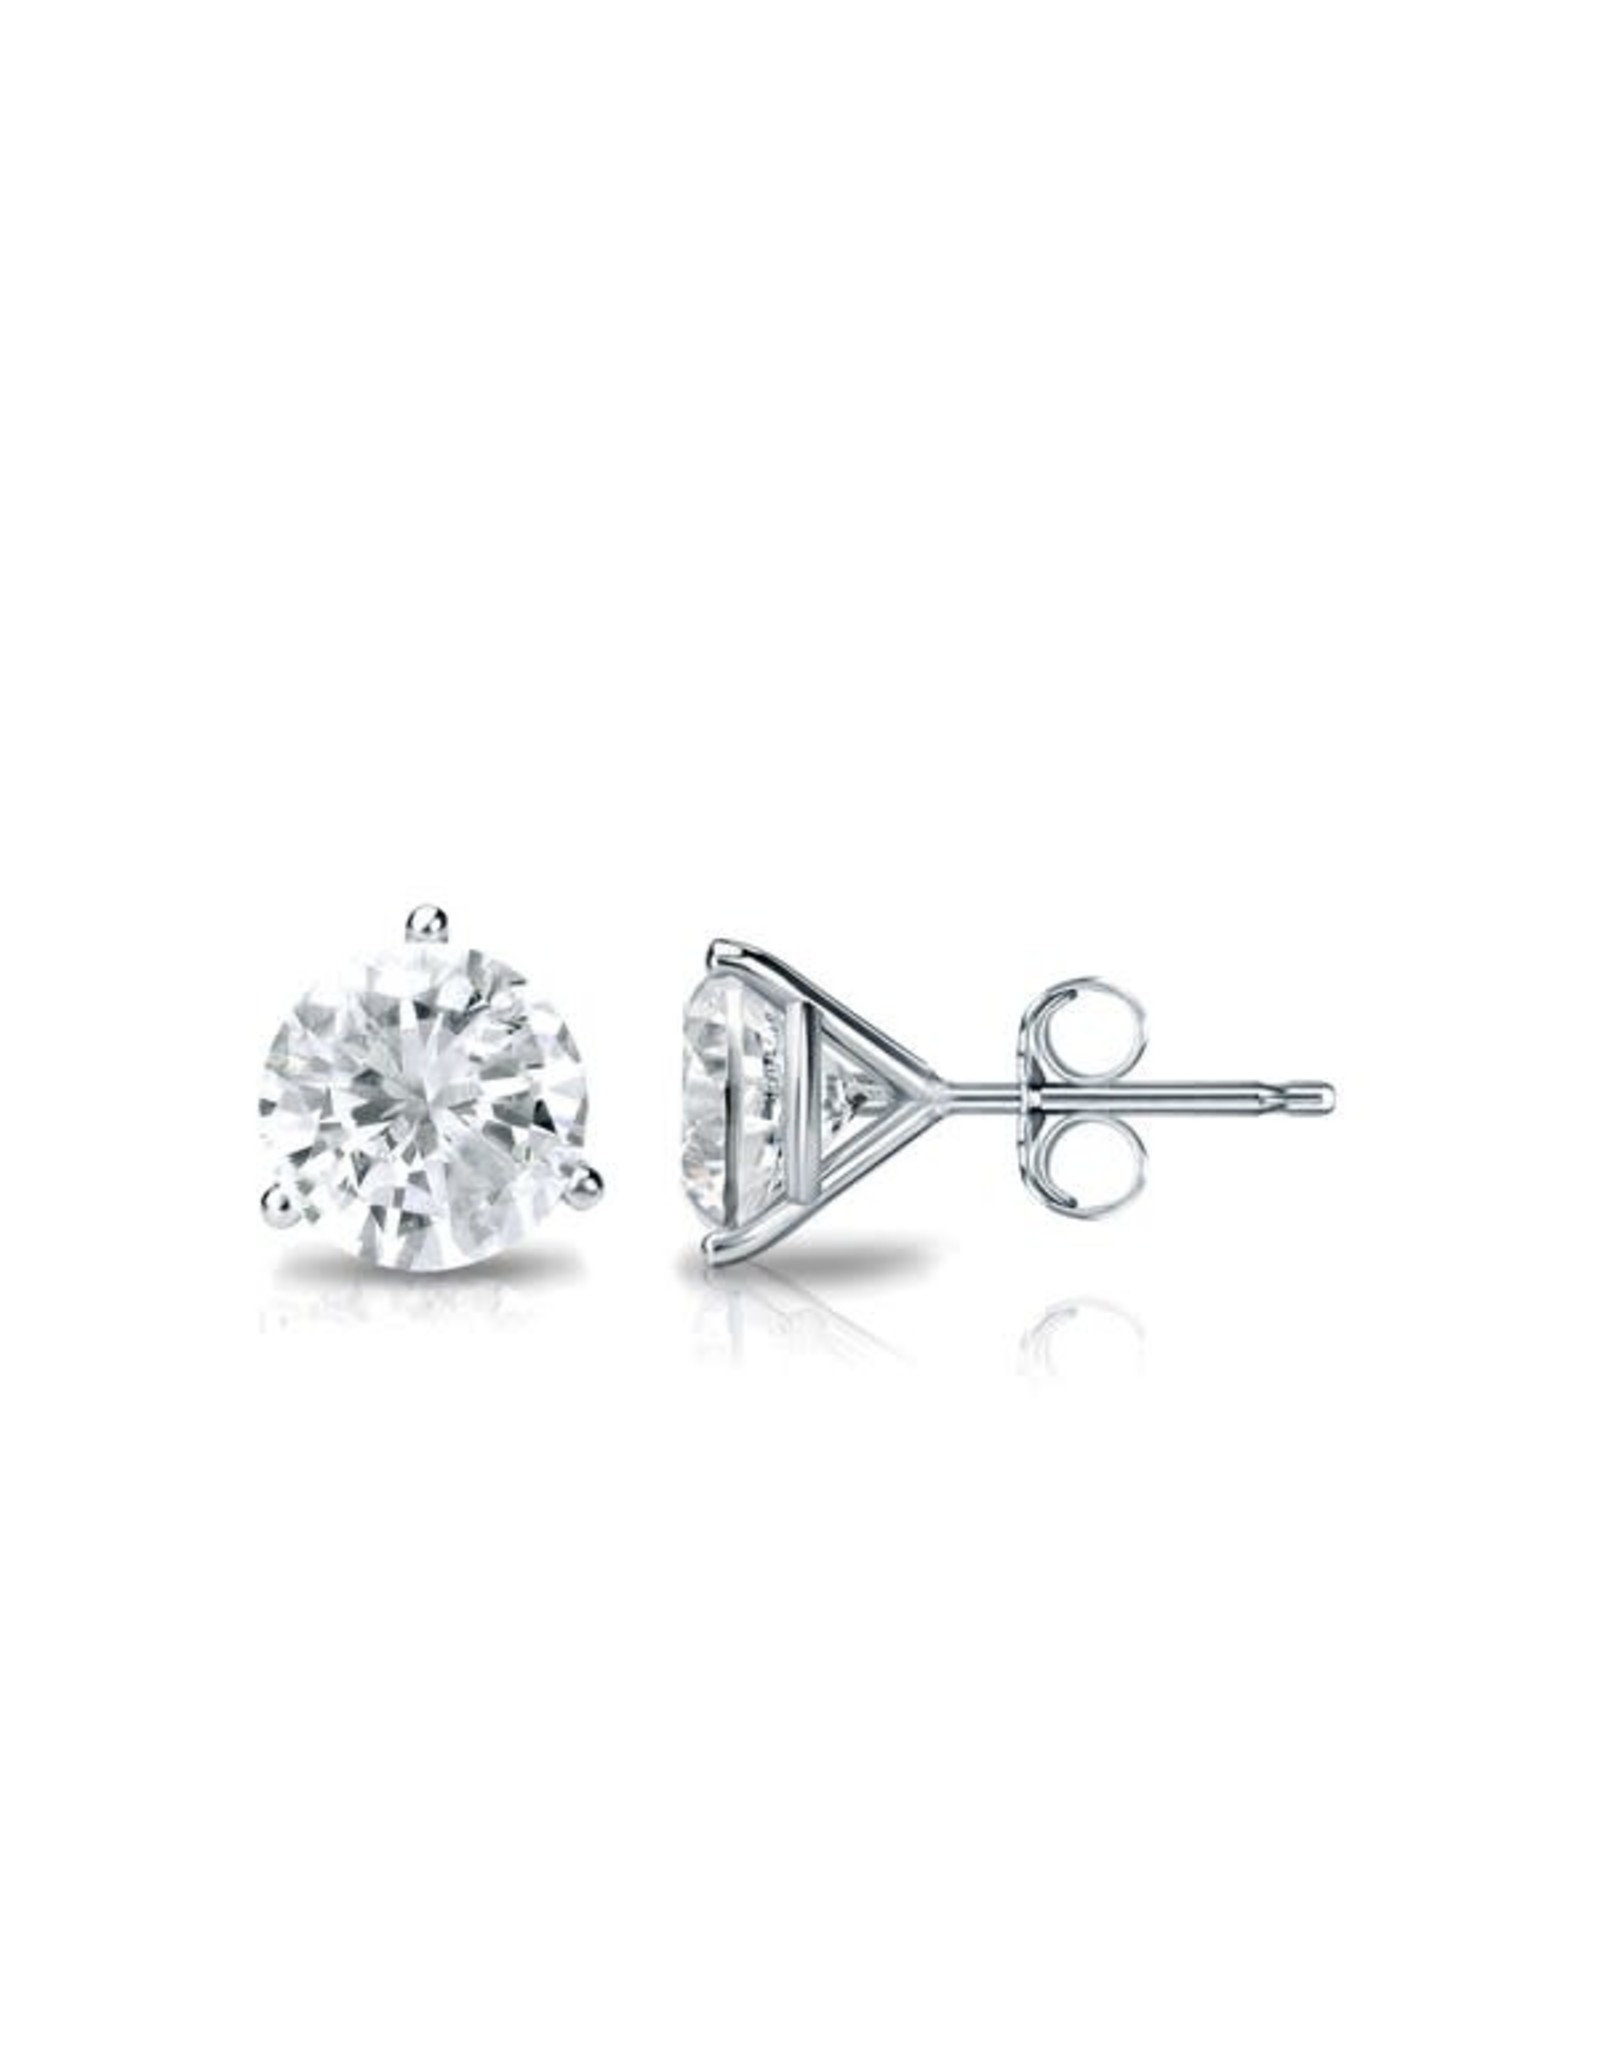 14K White Gold Martini Setting Diamond Stud Earrings, D: 0.61ct